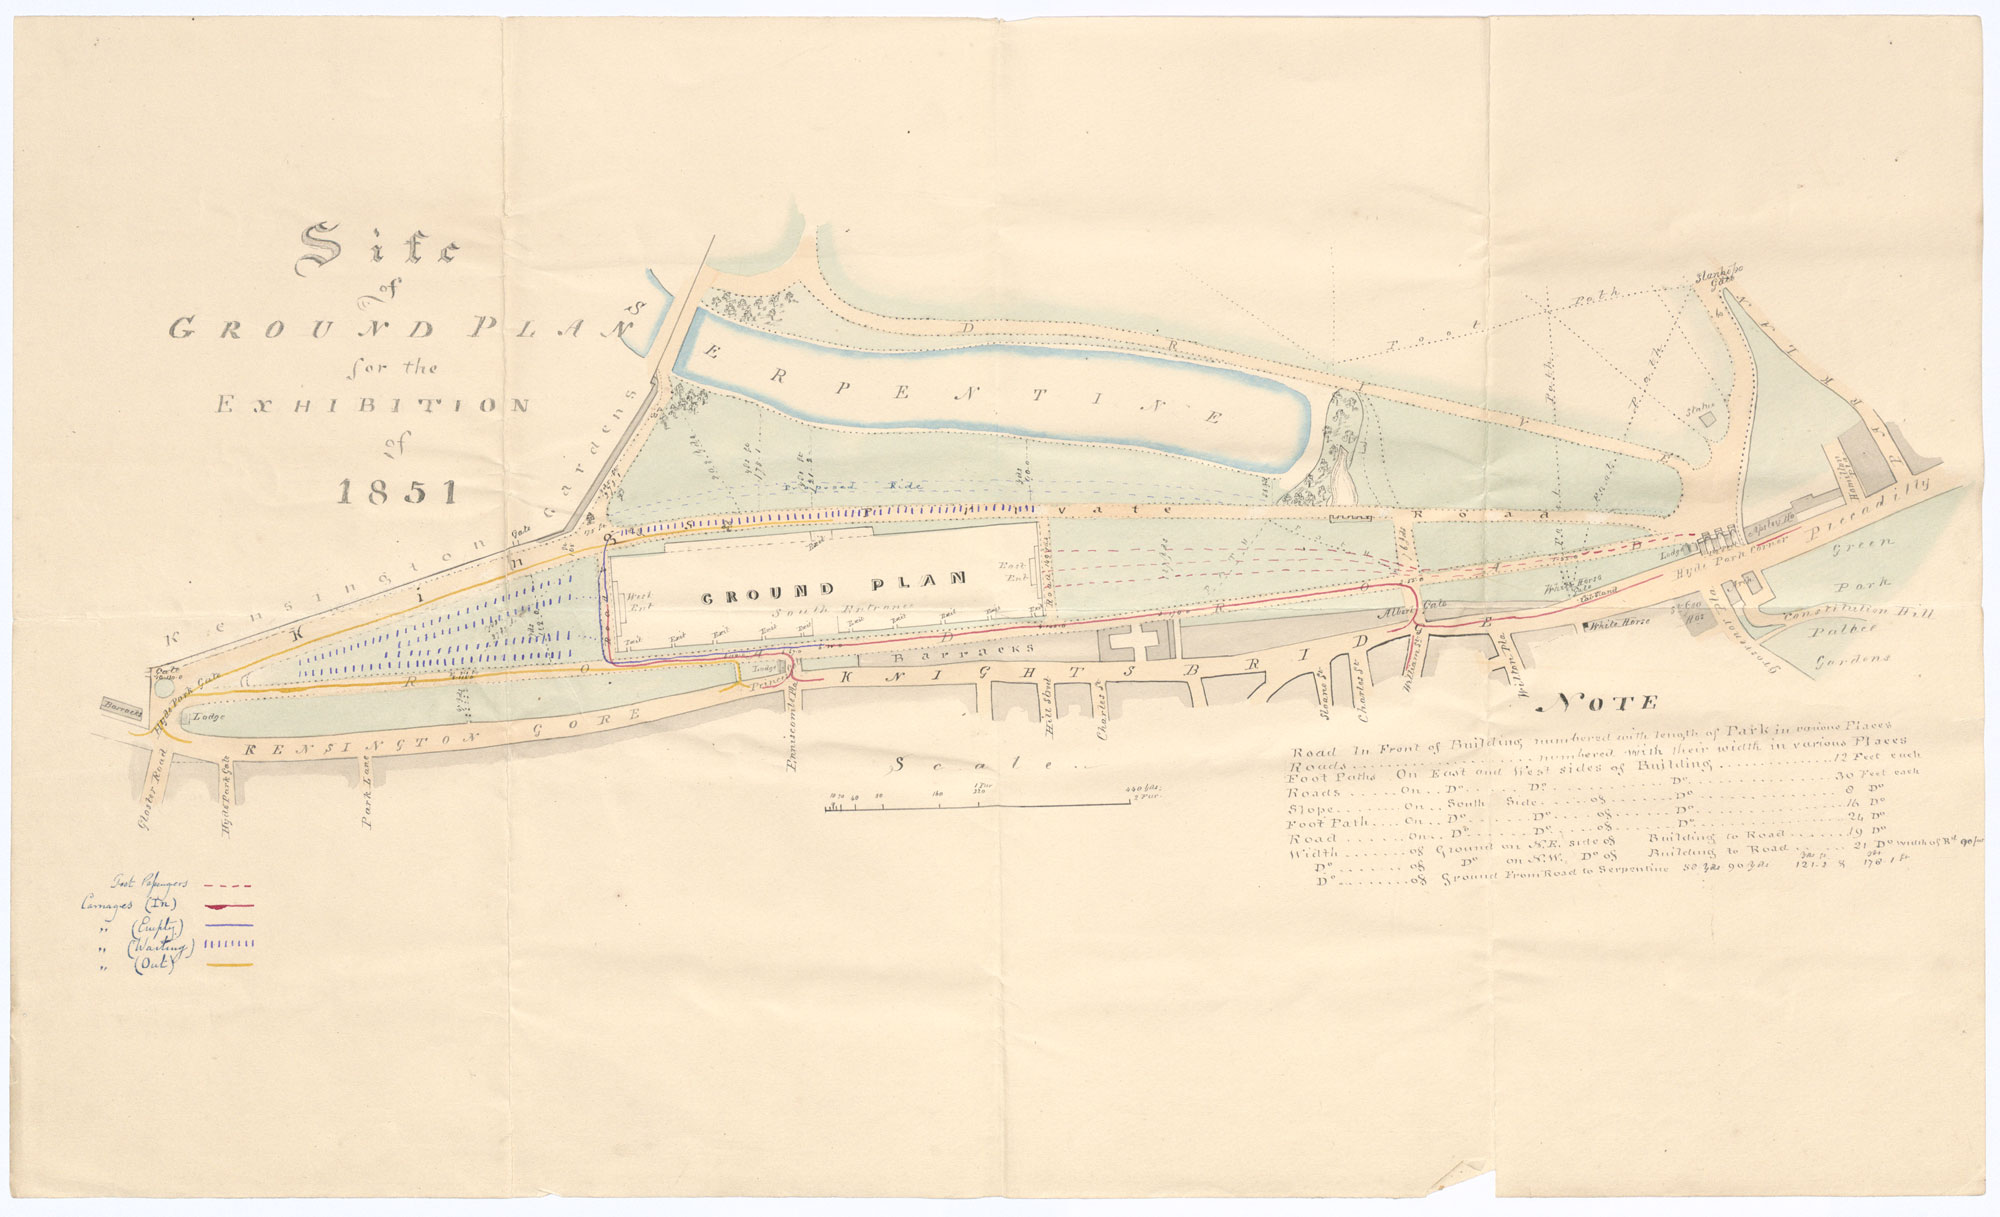 Site plan/map for the Great Exhibition in Hyde Park 1851 (HO 45/3051)